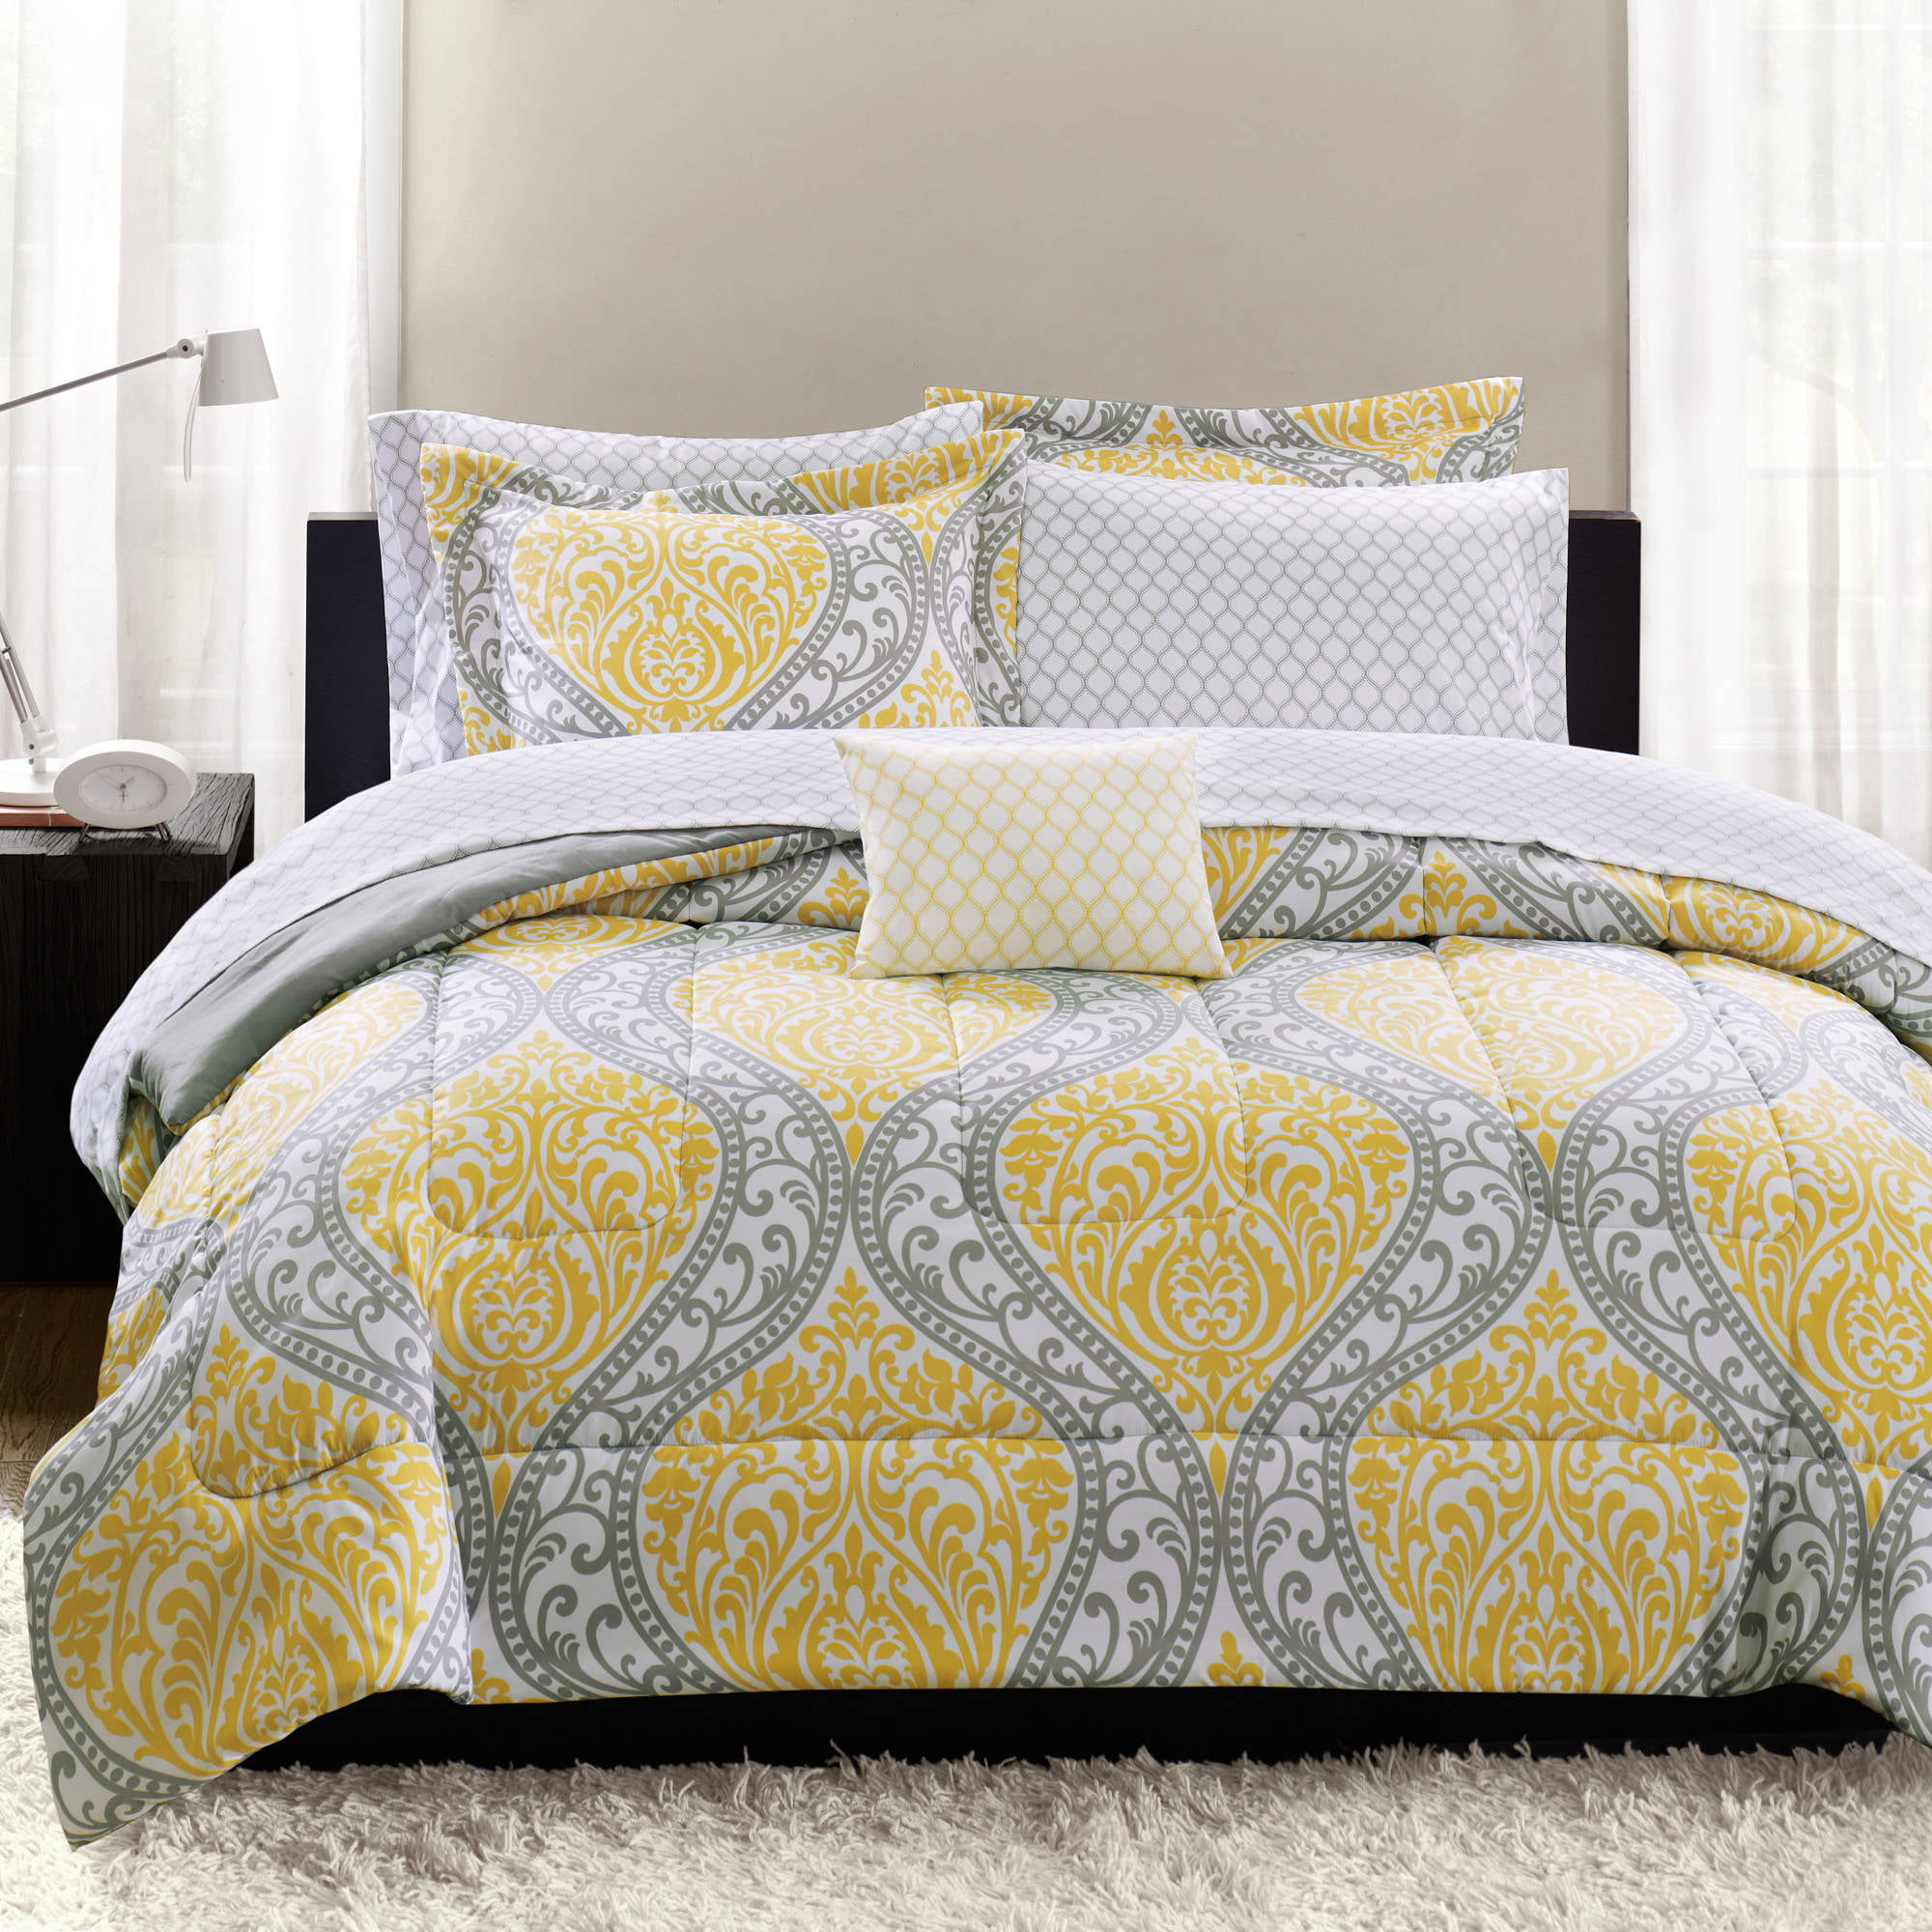 Cotton Bed Sheets Walmart